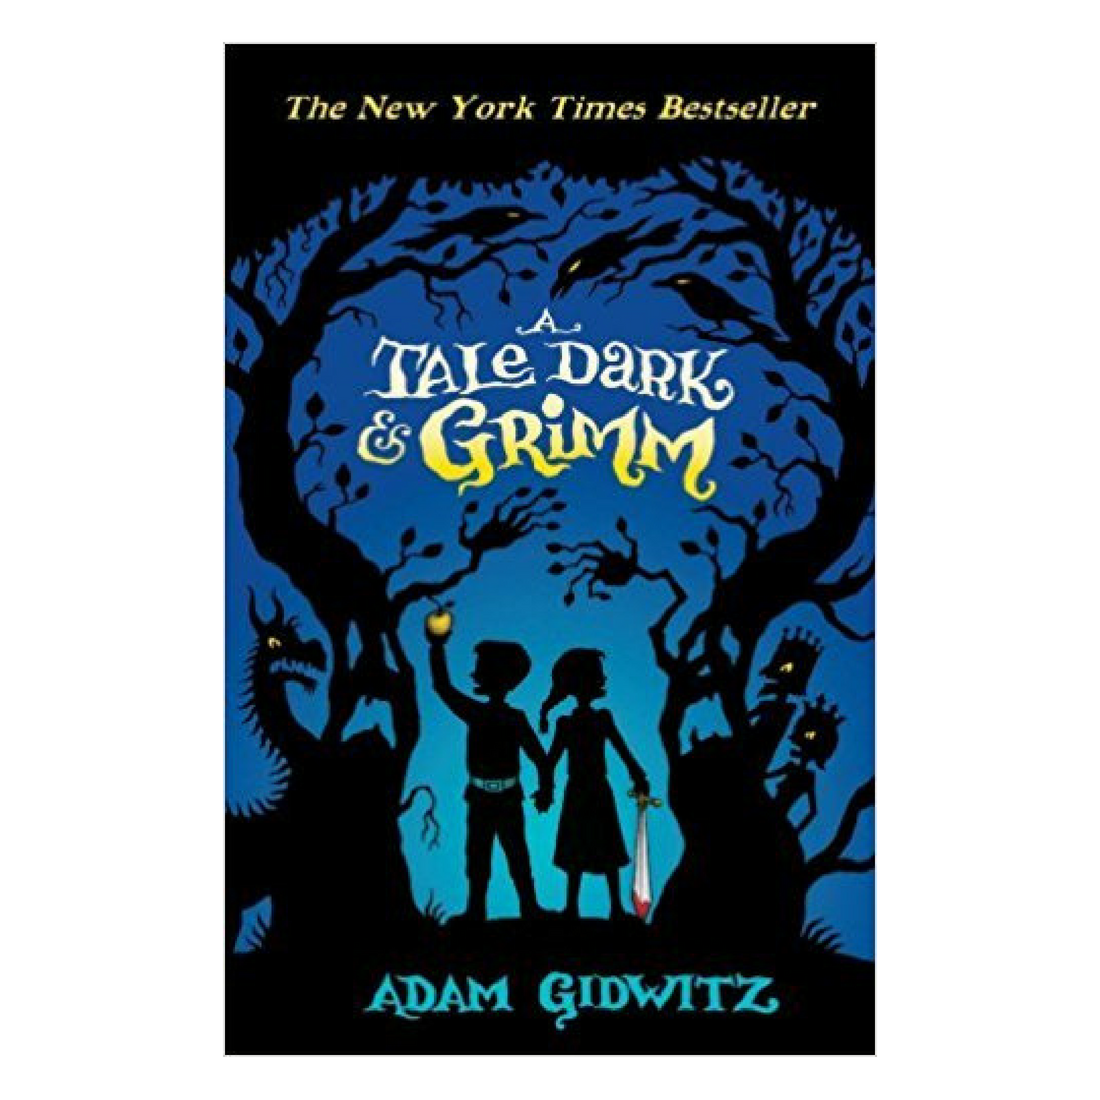 A Tale Dark and Grimm - Many adults know that the original version of Grimm's fairy tales are extremely dark and often end very badly for their young main characters. In a Tale Dark and Grimm, Hansel and Gretel overhear a telling of their original gruesome story and decide to run away from home in the hopes of escaping that terrible fate. Similar to a Series of Unfortunate Events, the narrator frequently warns the reader that the tales that they are about to be told are truly awful and to stop reading immediately if they want to hear about light and happiness. The narrator then leads Hansel, Gretel and the reader through twisted versions of their story including dragons, a moon that eats children and complicated quests.